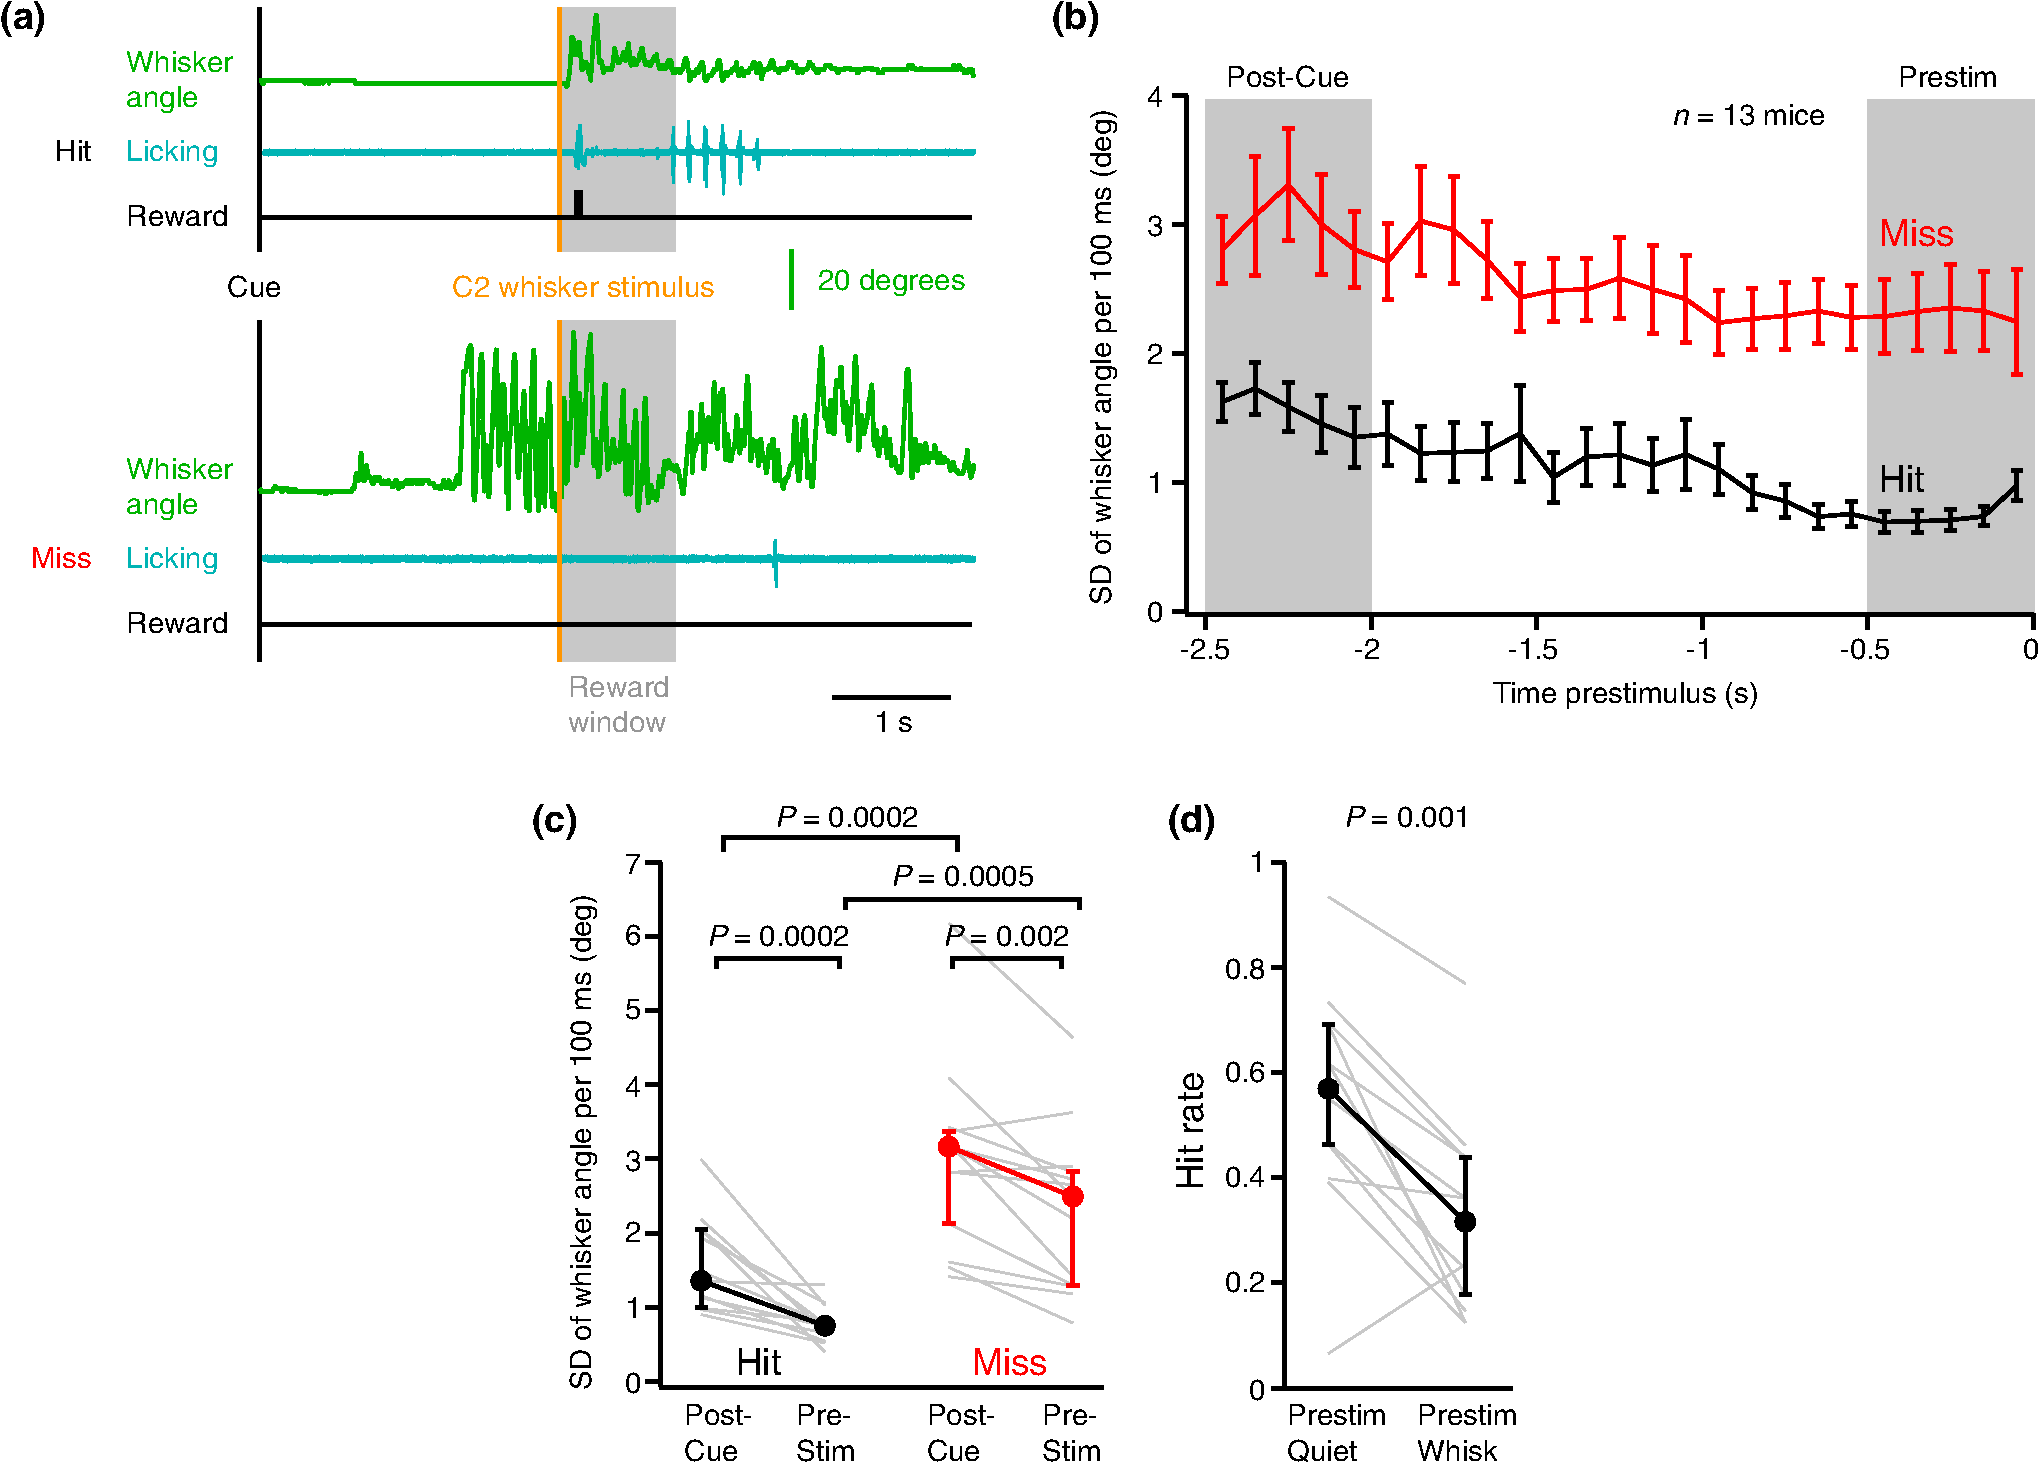 Voltage Sensitive Dye Imaging Of Mouse Neocortex During A Whisker Figure 3 38 Comparison In Parallel Circuit The Hit Rate Was Significantly Higher For Prestim Quiet Compared To Whisking Trials Wilcoxon Signed Rank Test